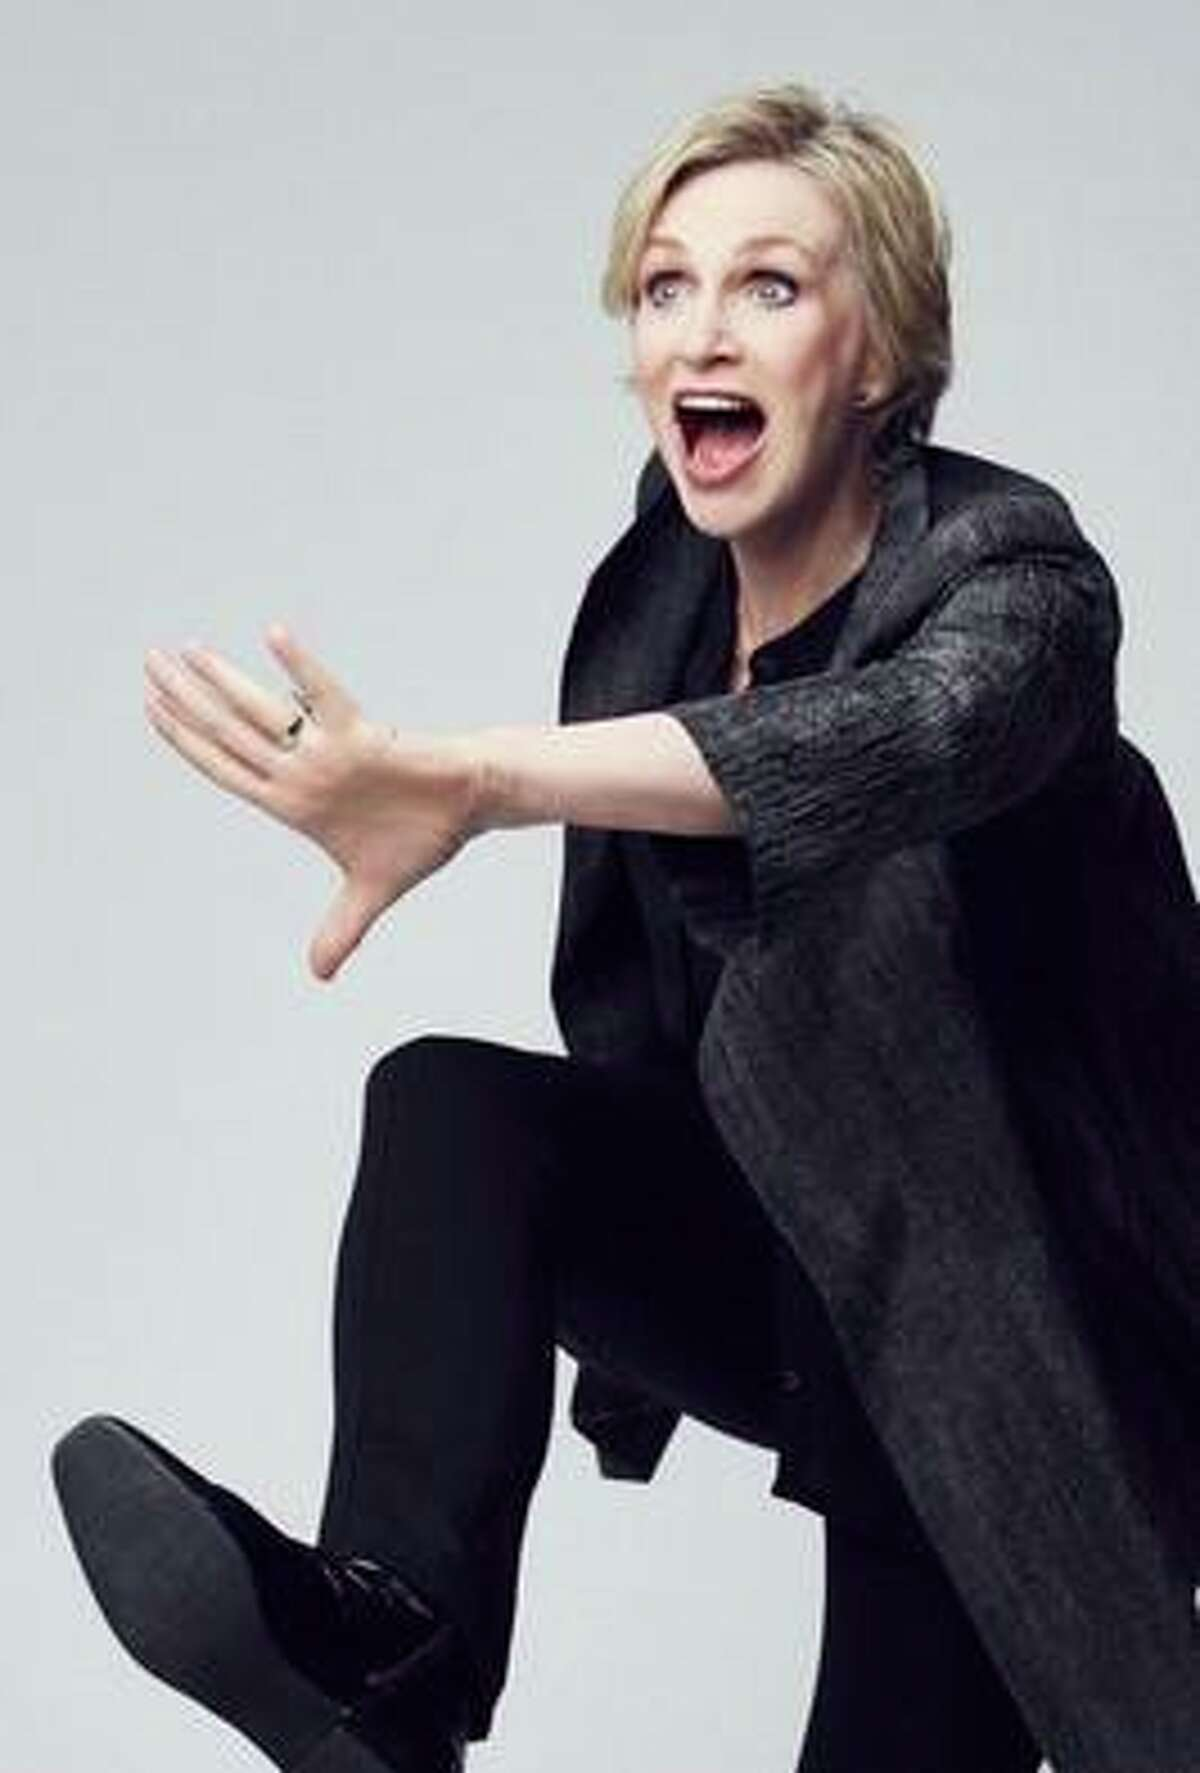 """Actor Jane Lynch of """"Glee"""" fame was the first guest on the weekly """"How To Be Amazing"""" encore podcasts with host Michael Ian Black to benefit the Mark Twain Library."""